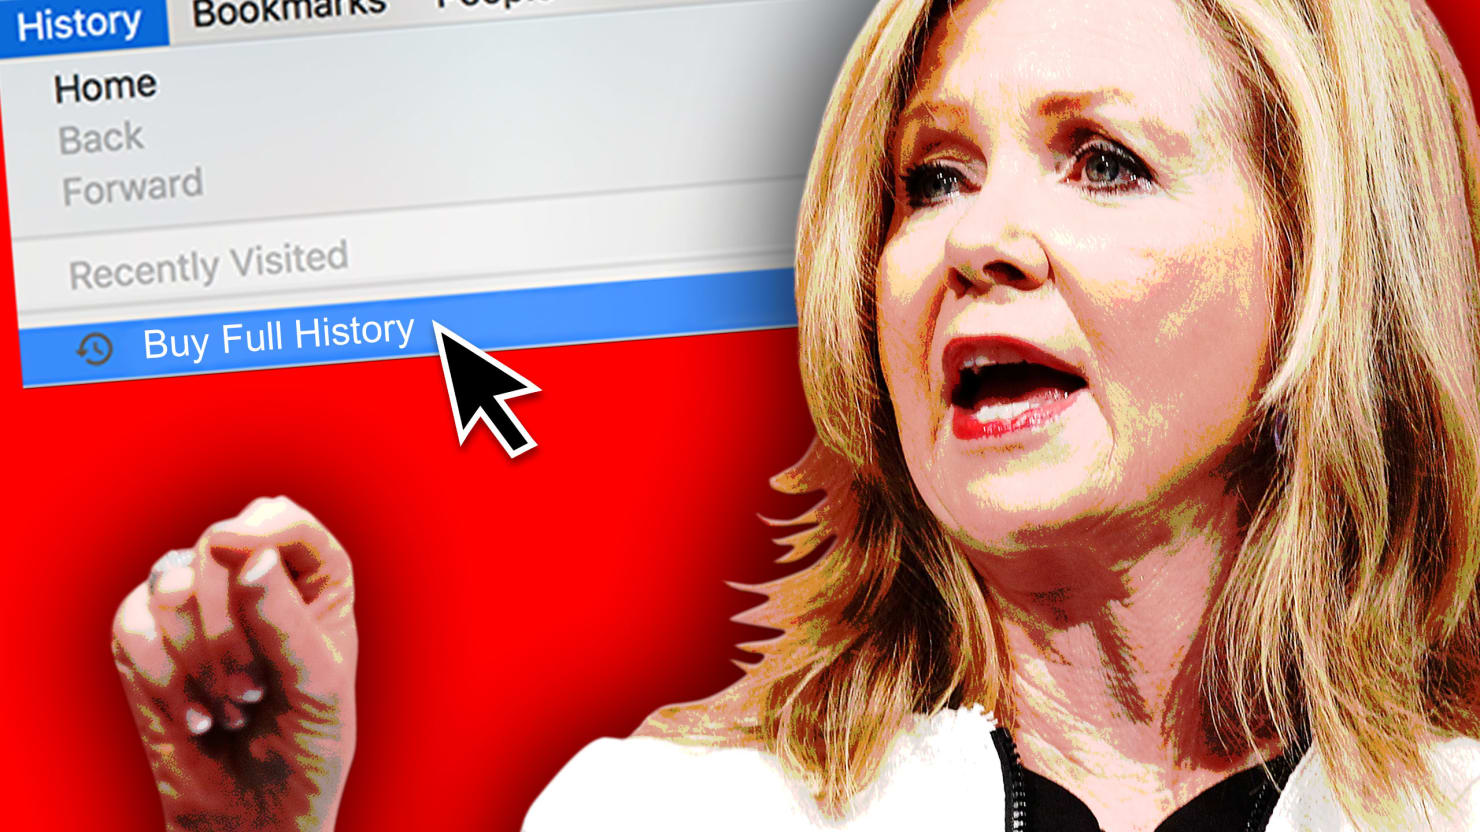 This Politician Gave Away Your Data. Now Buy Hers.